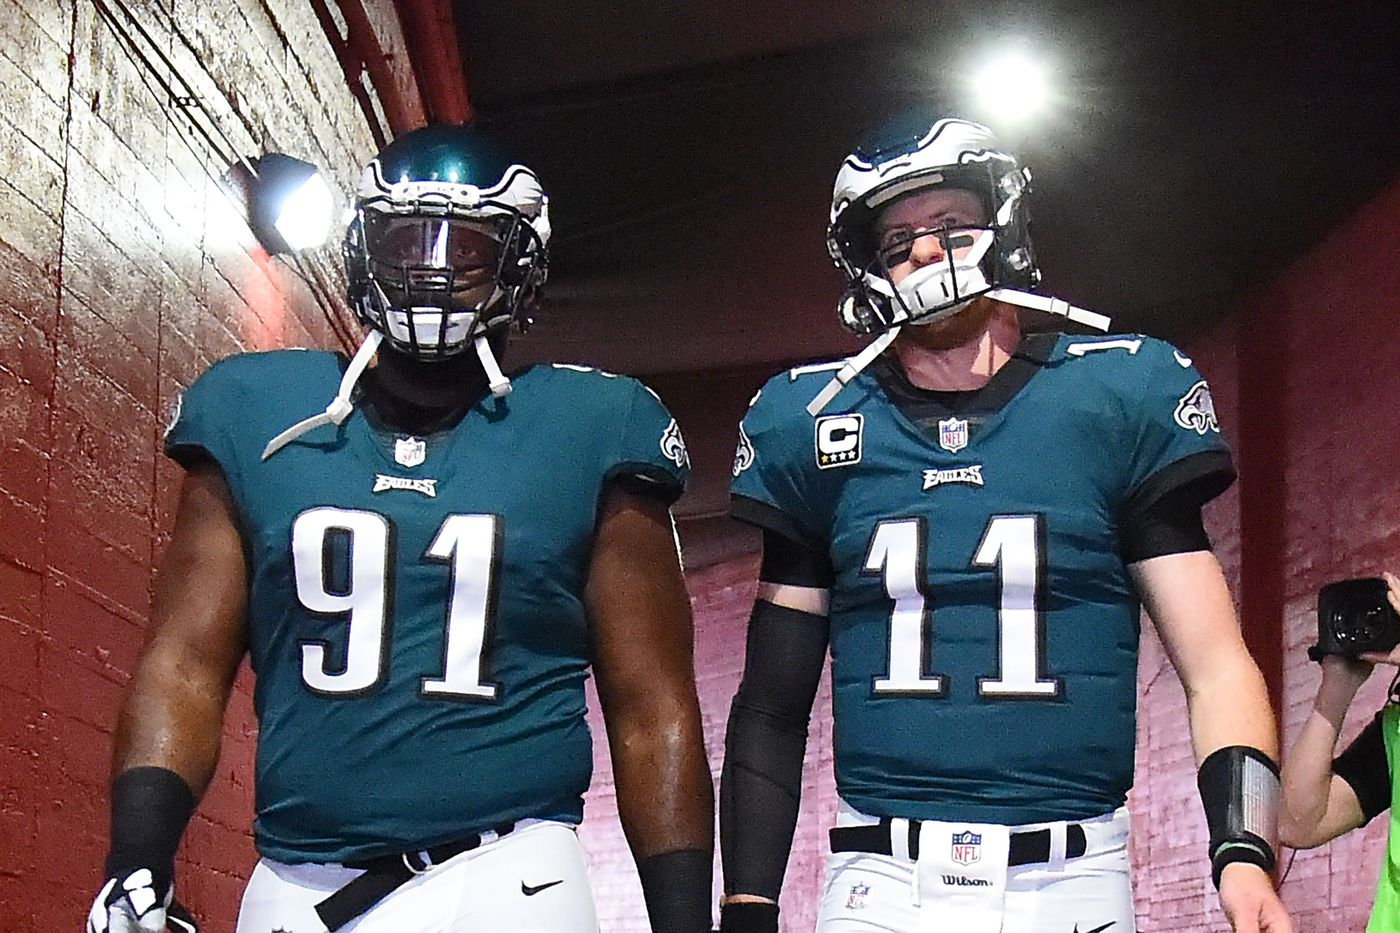 newest c01e5 7b345 Pro Bowl Roster 2018: 6 Eagles players make the cut ...